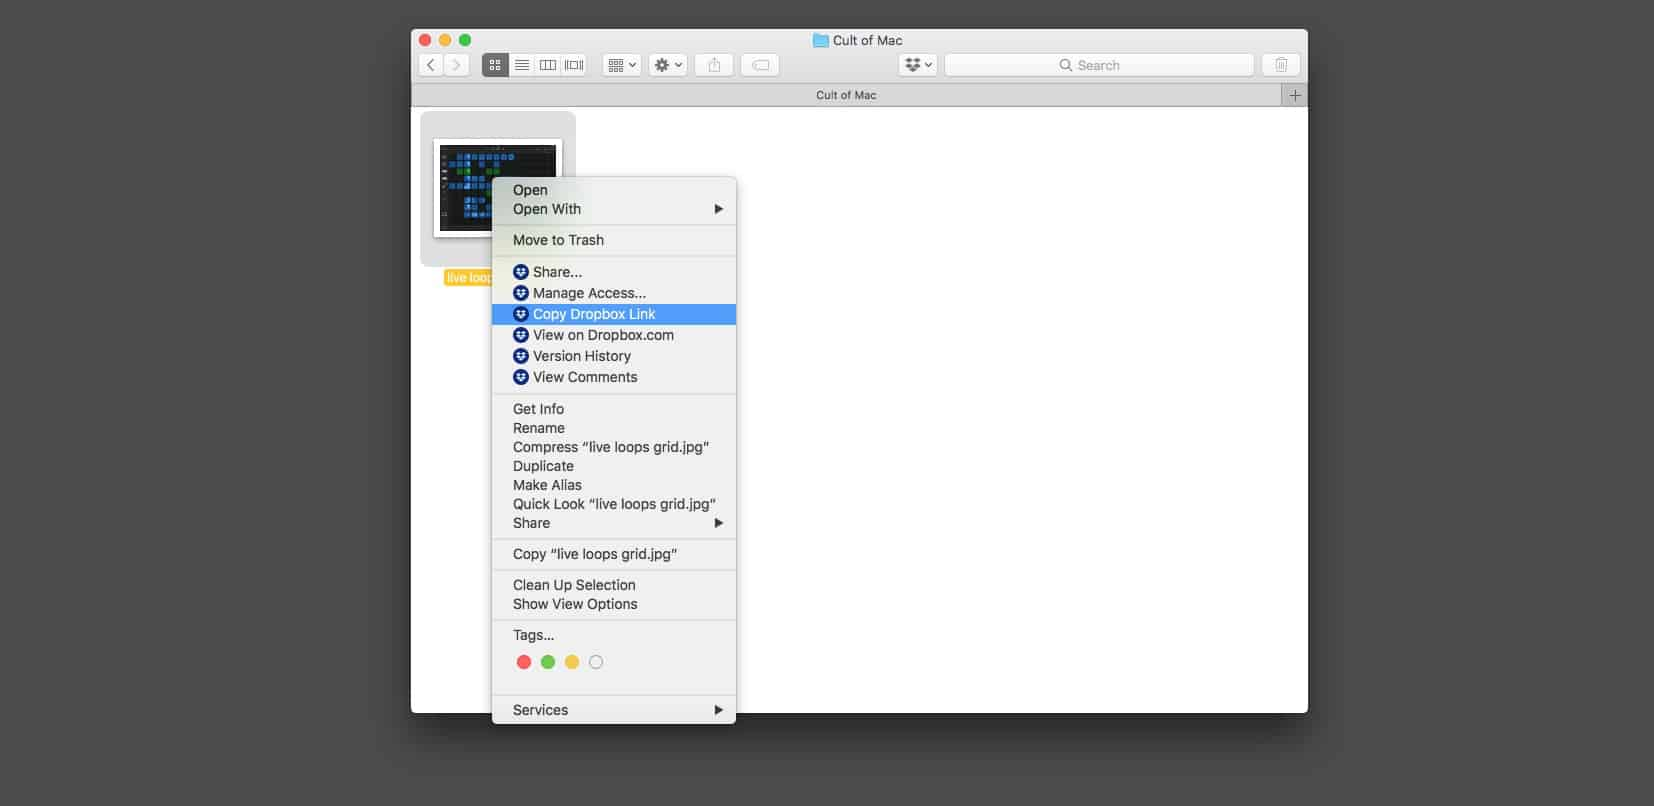 Force Dropbox to download your shared links directly | Cult of Mac